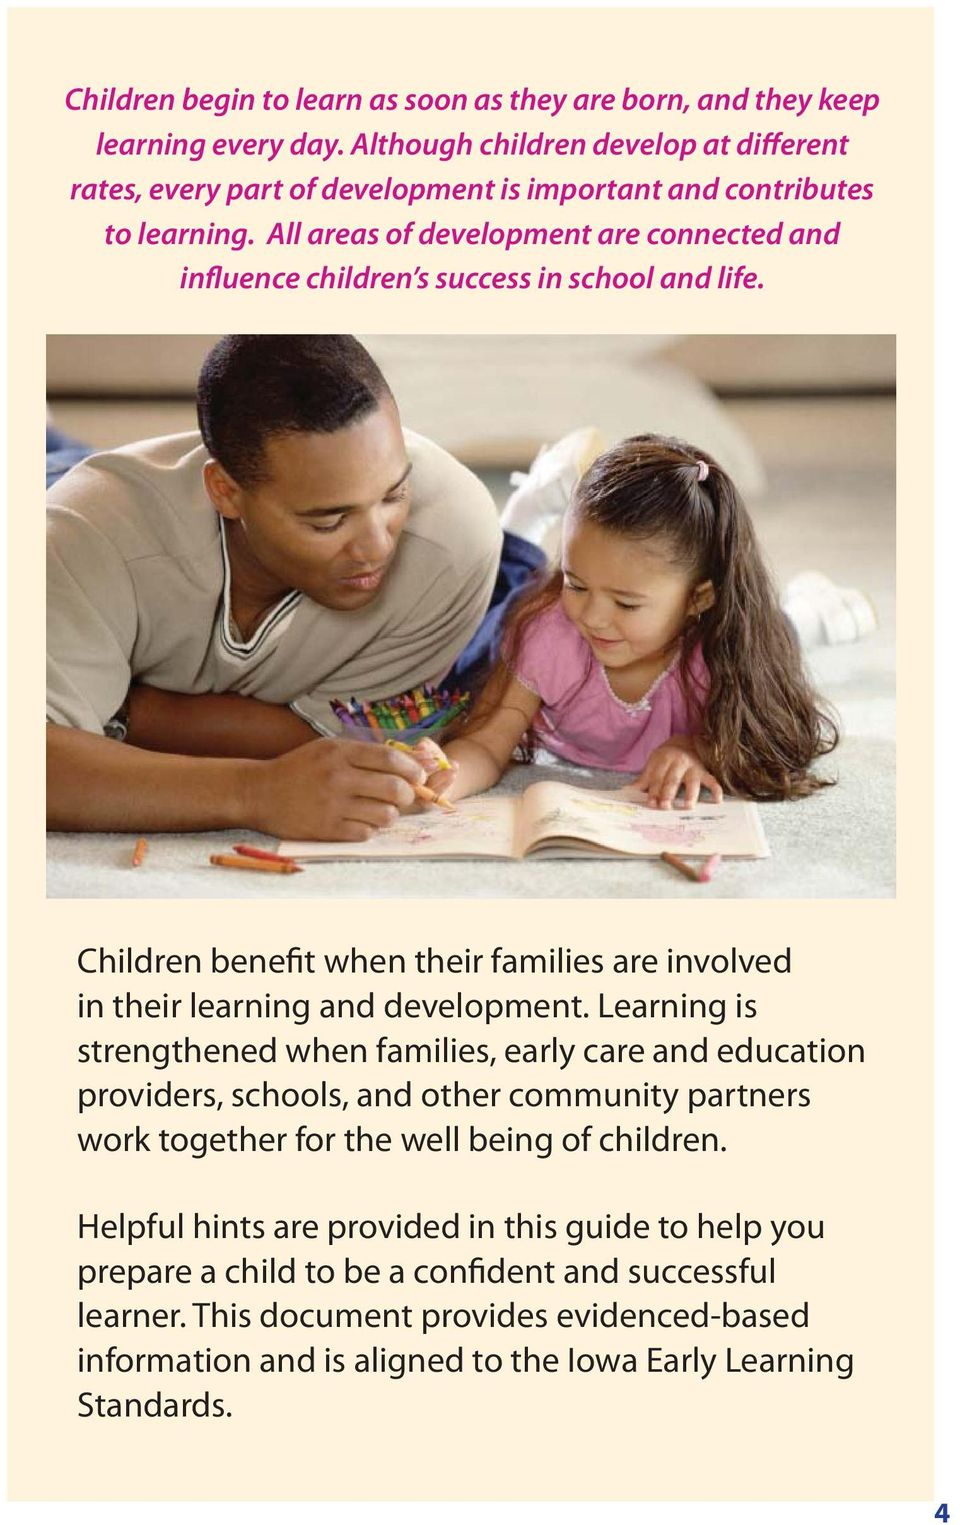 All areas of development are connected and influence children s success in school and life. Children benefit when their families are involved in their learning and development.